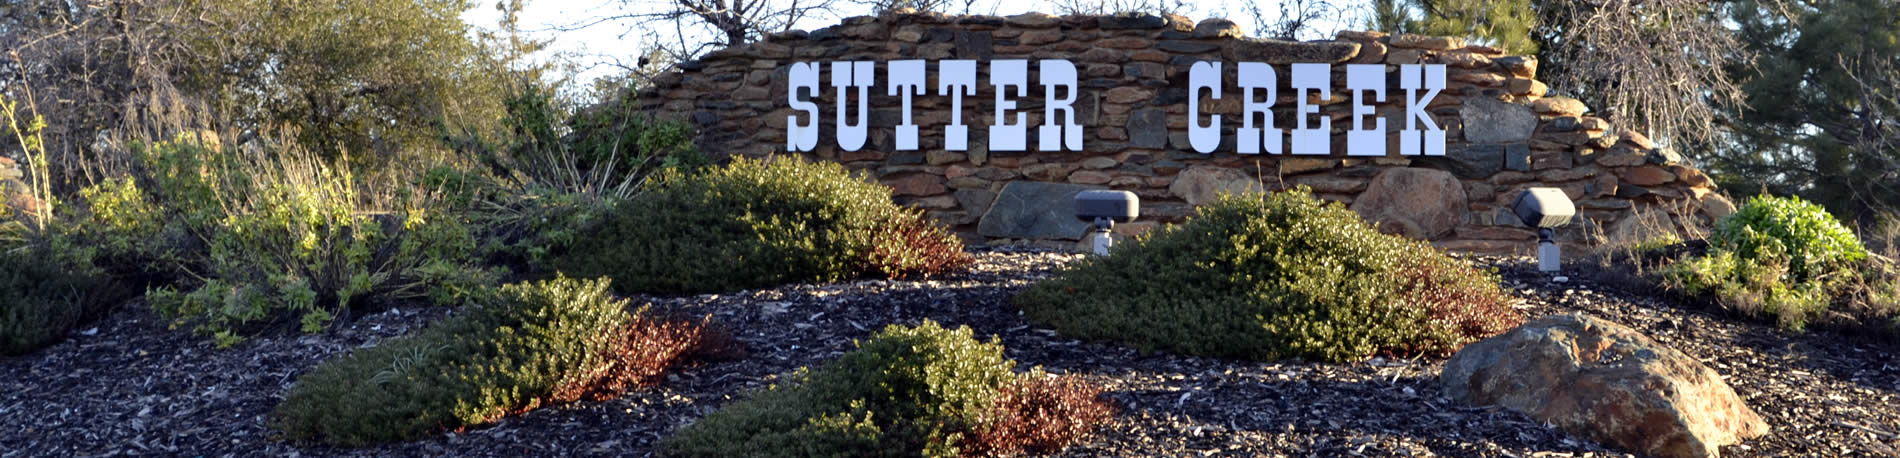 sutter creek servcies amador county business listing